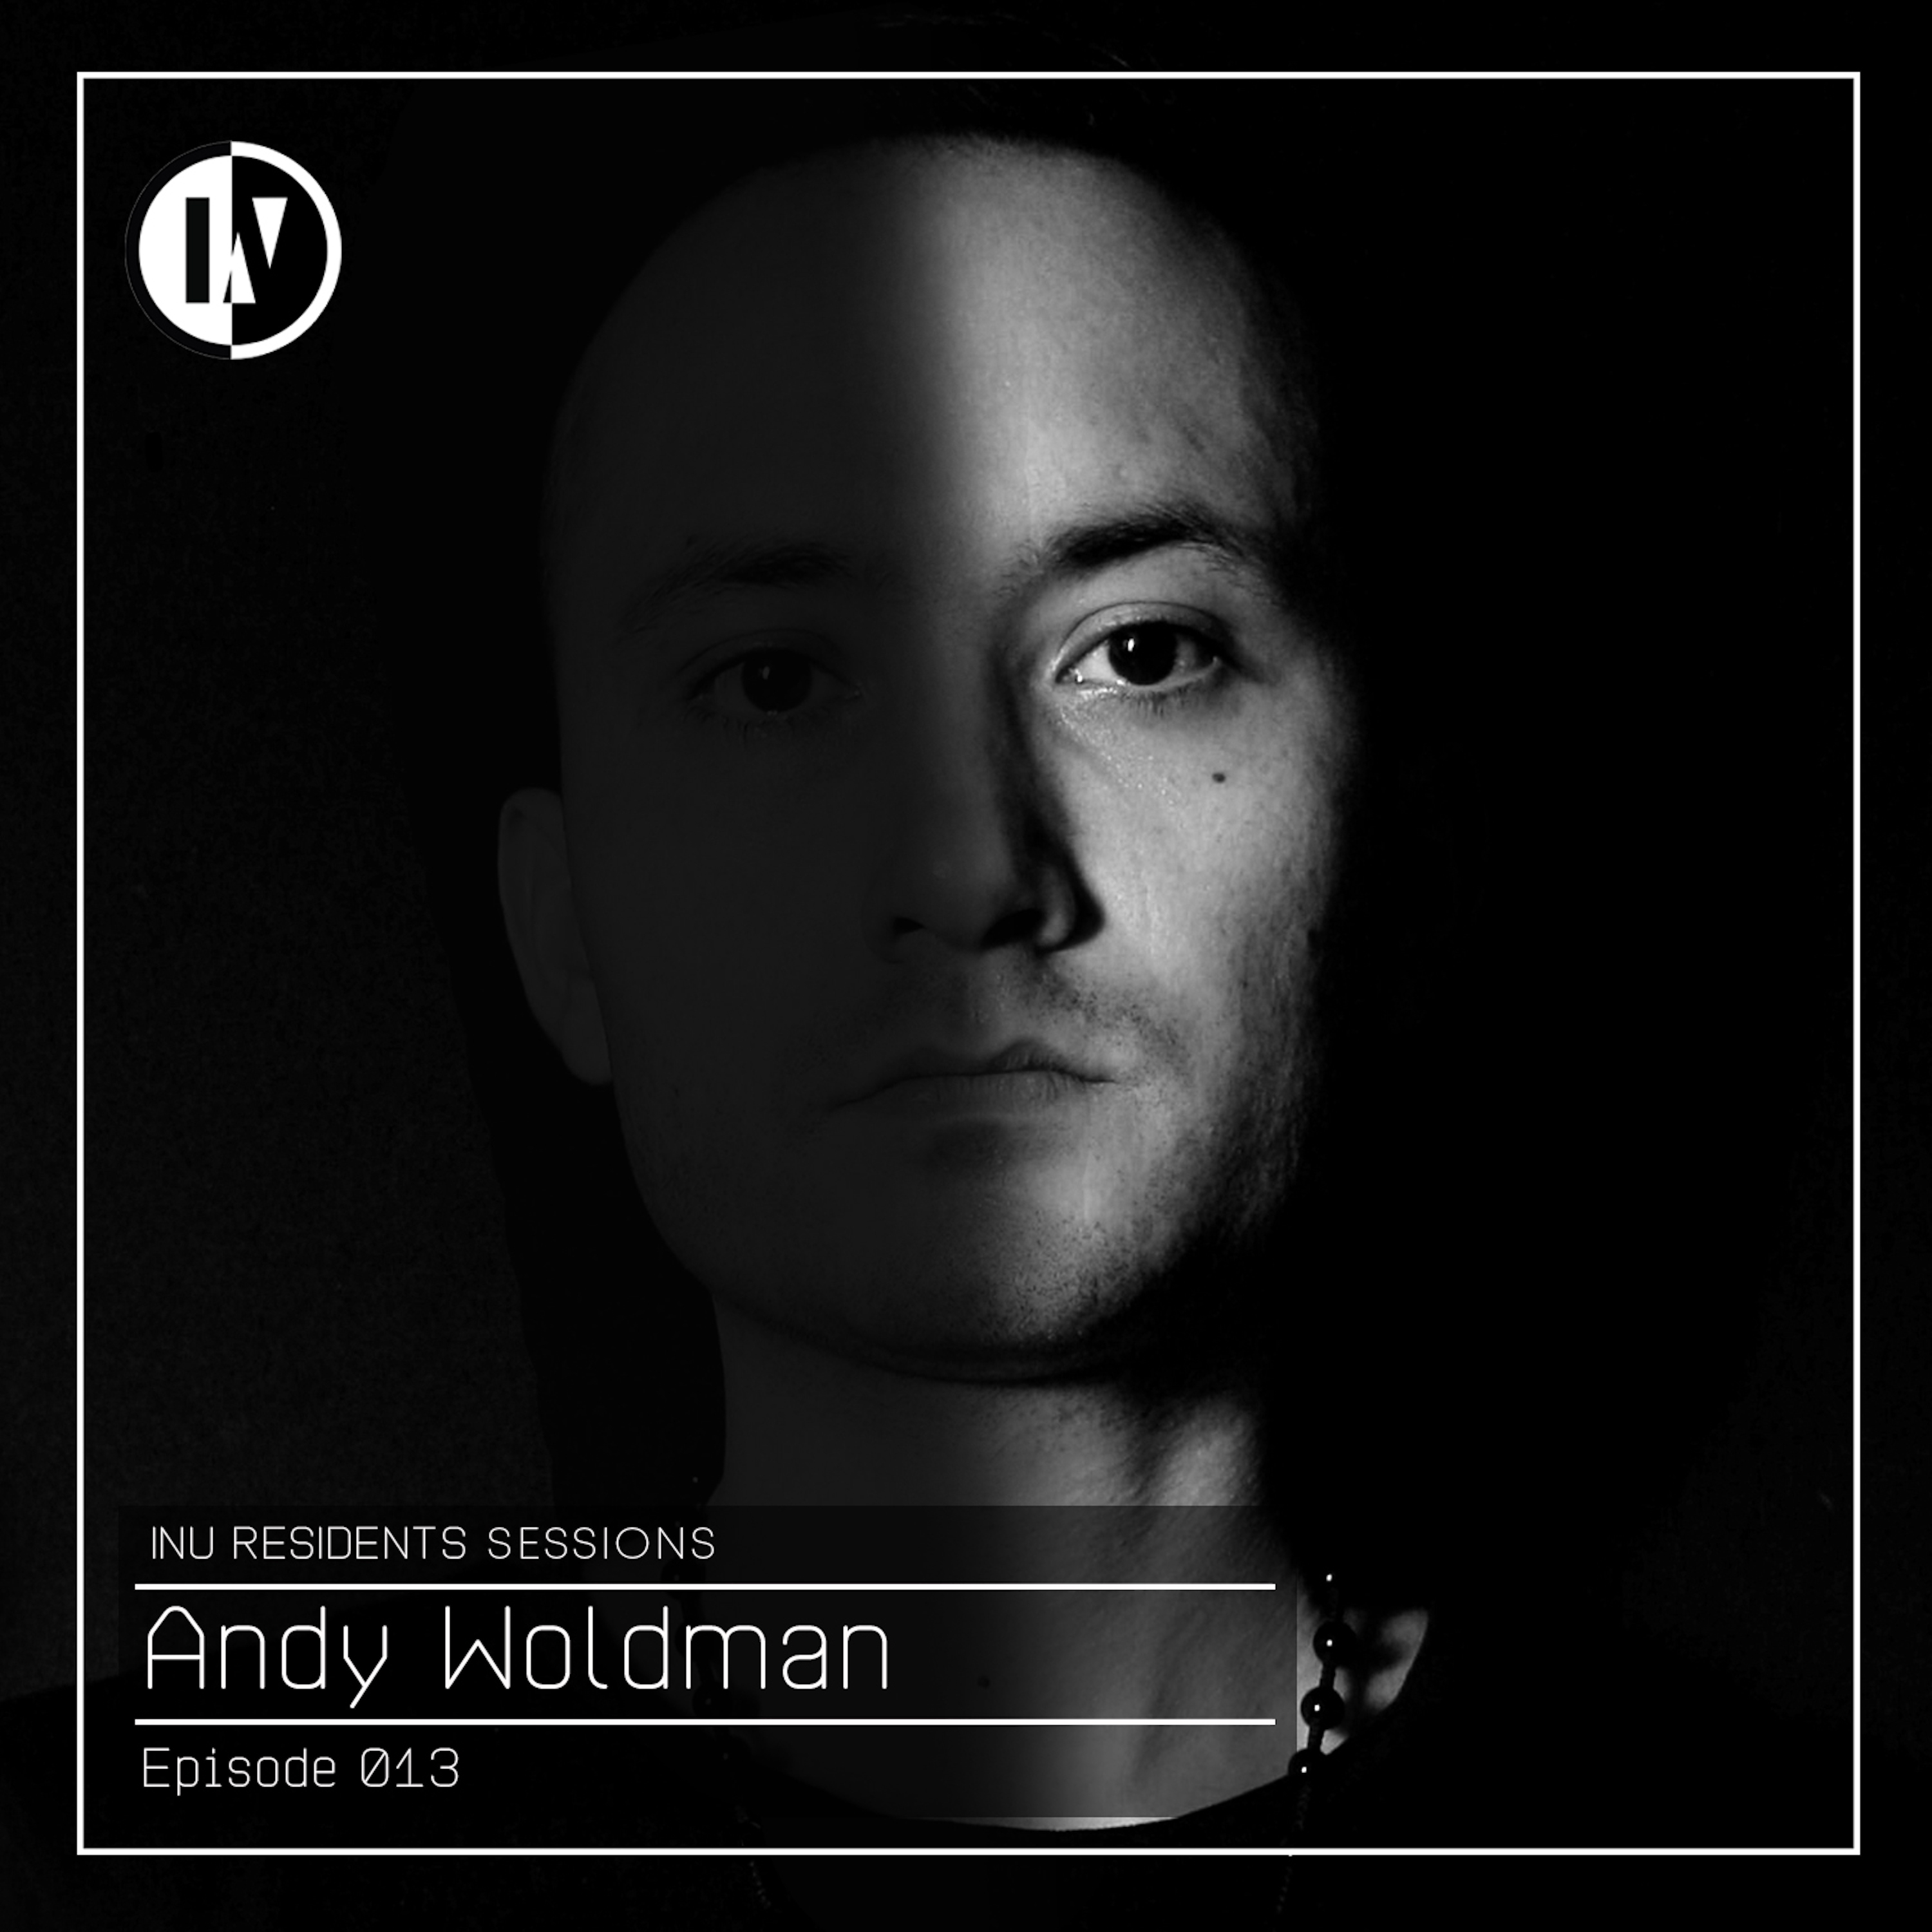 INU Residents Sessions 013 - Andy Woldman (from September 6th)